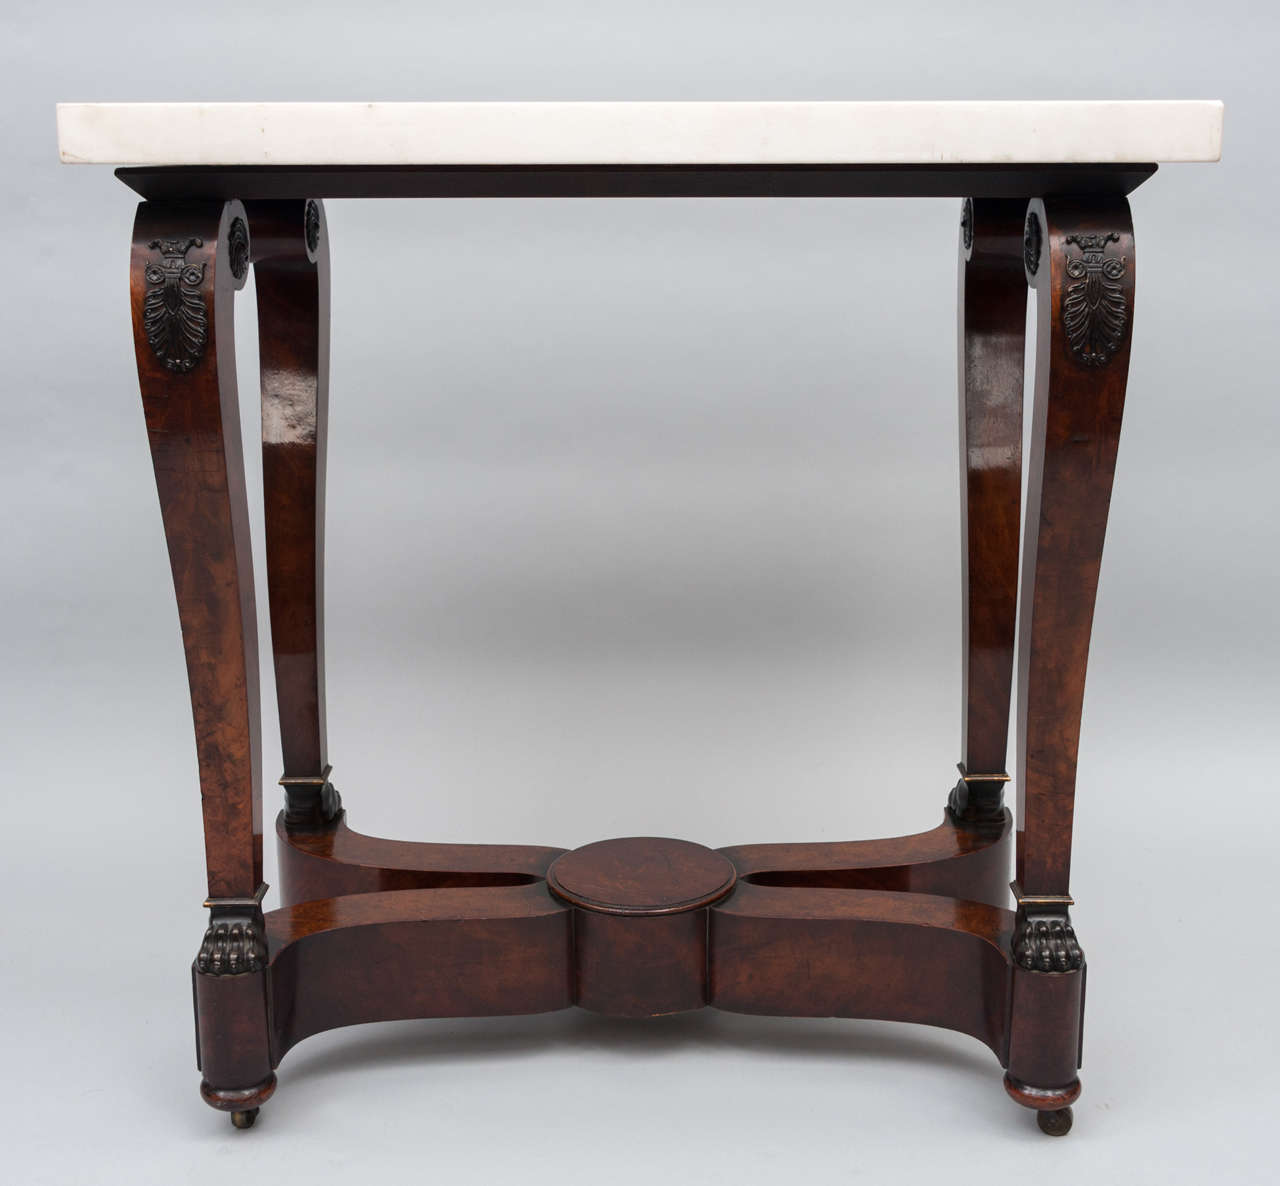 Early 19th Century French Empire Centre Table In Good Condition For Sale In Moreton-in-Marsh, Gloucestershire